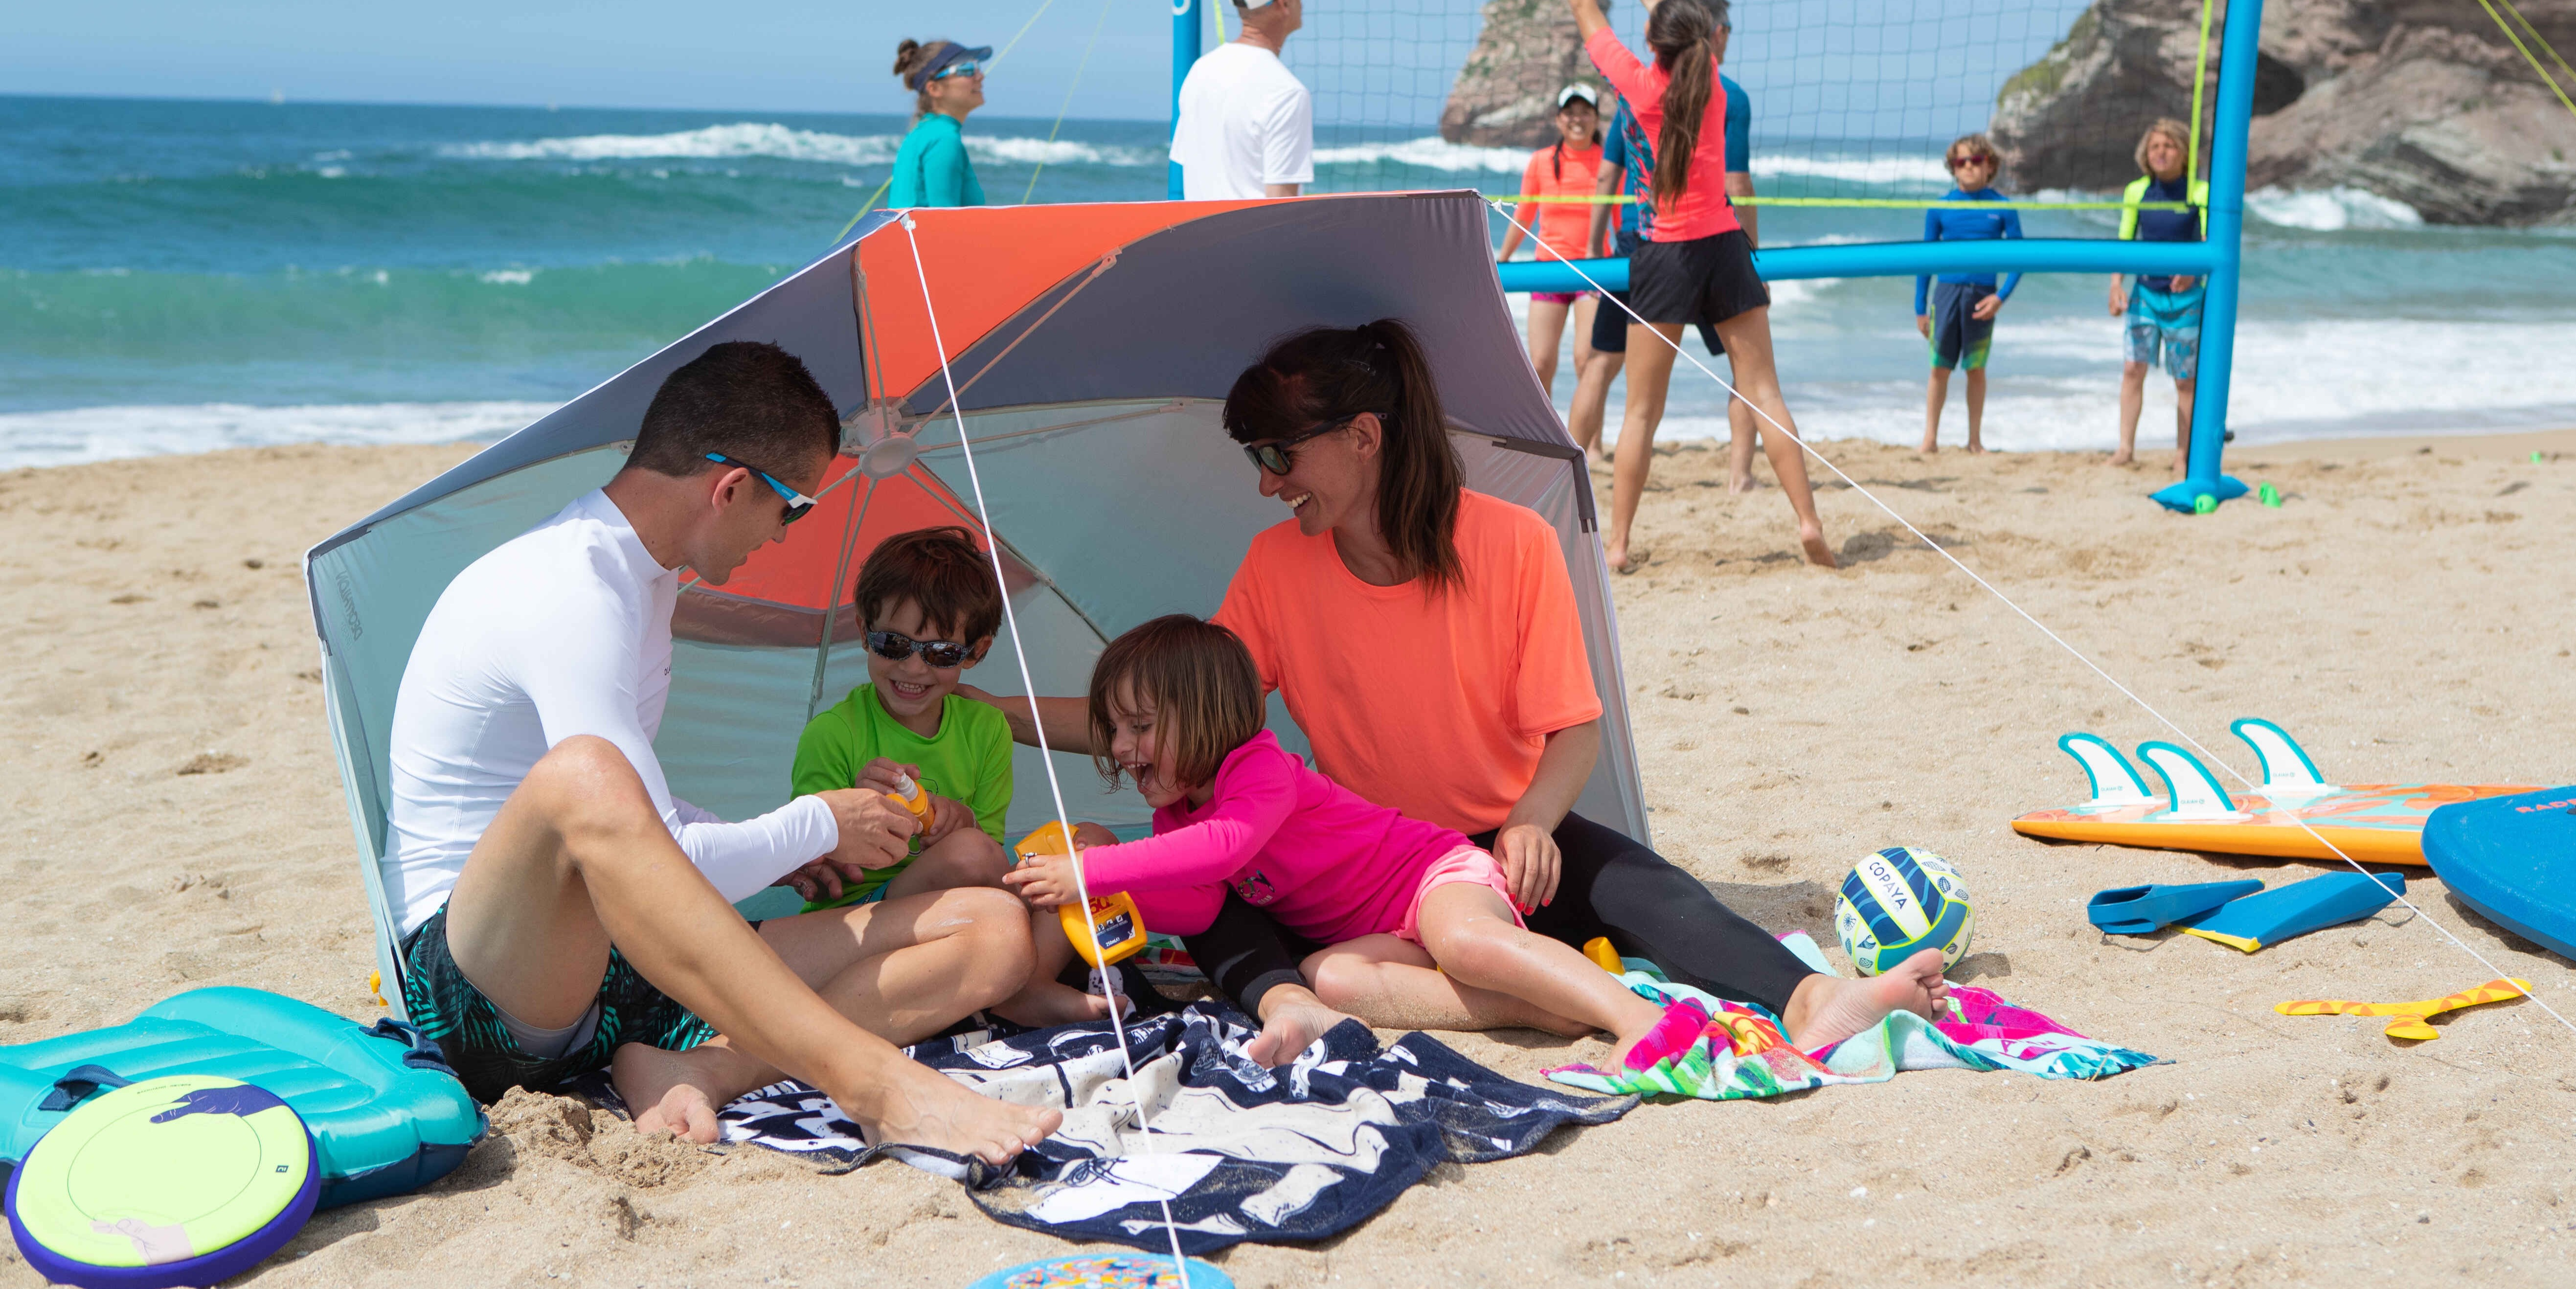 7 Beach Games For The Whole Family